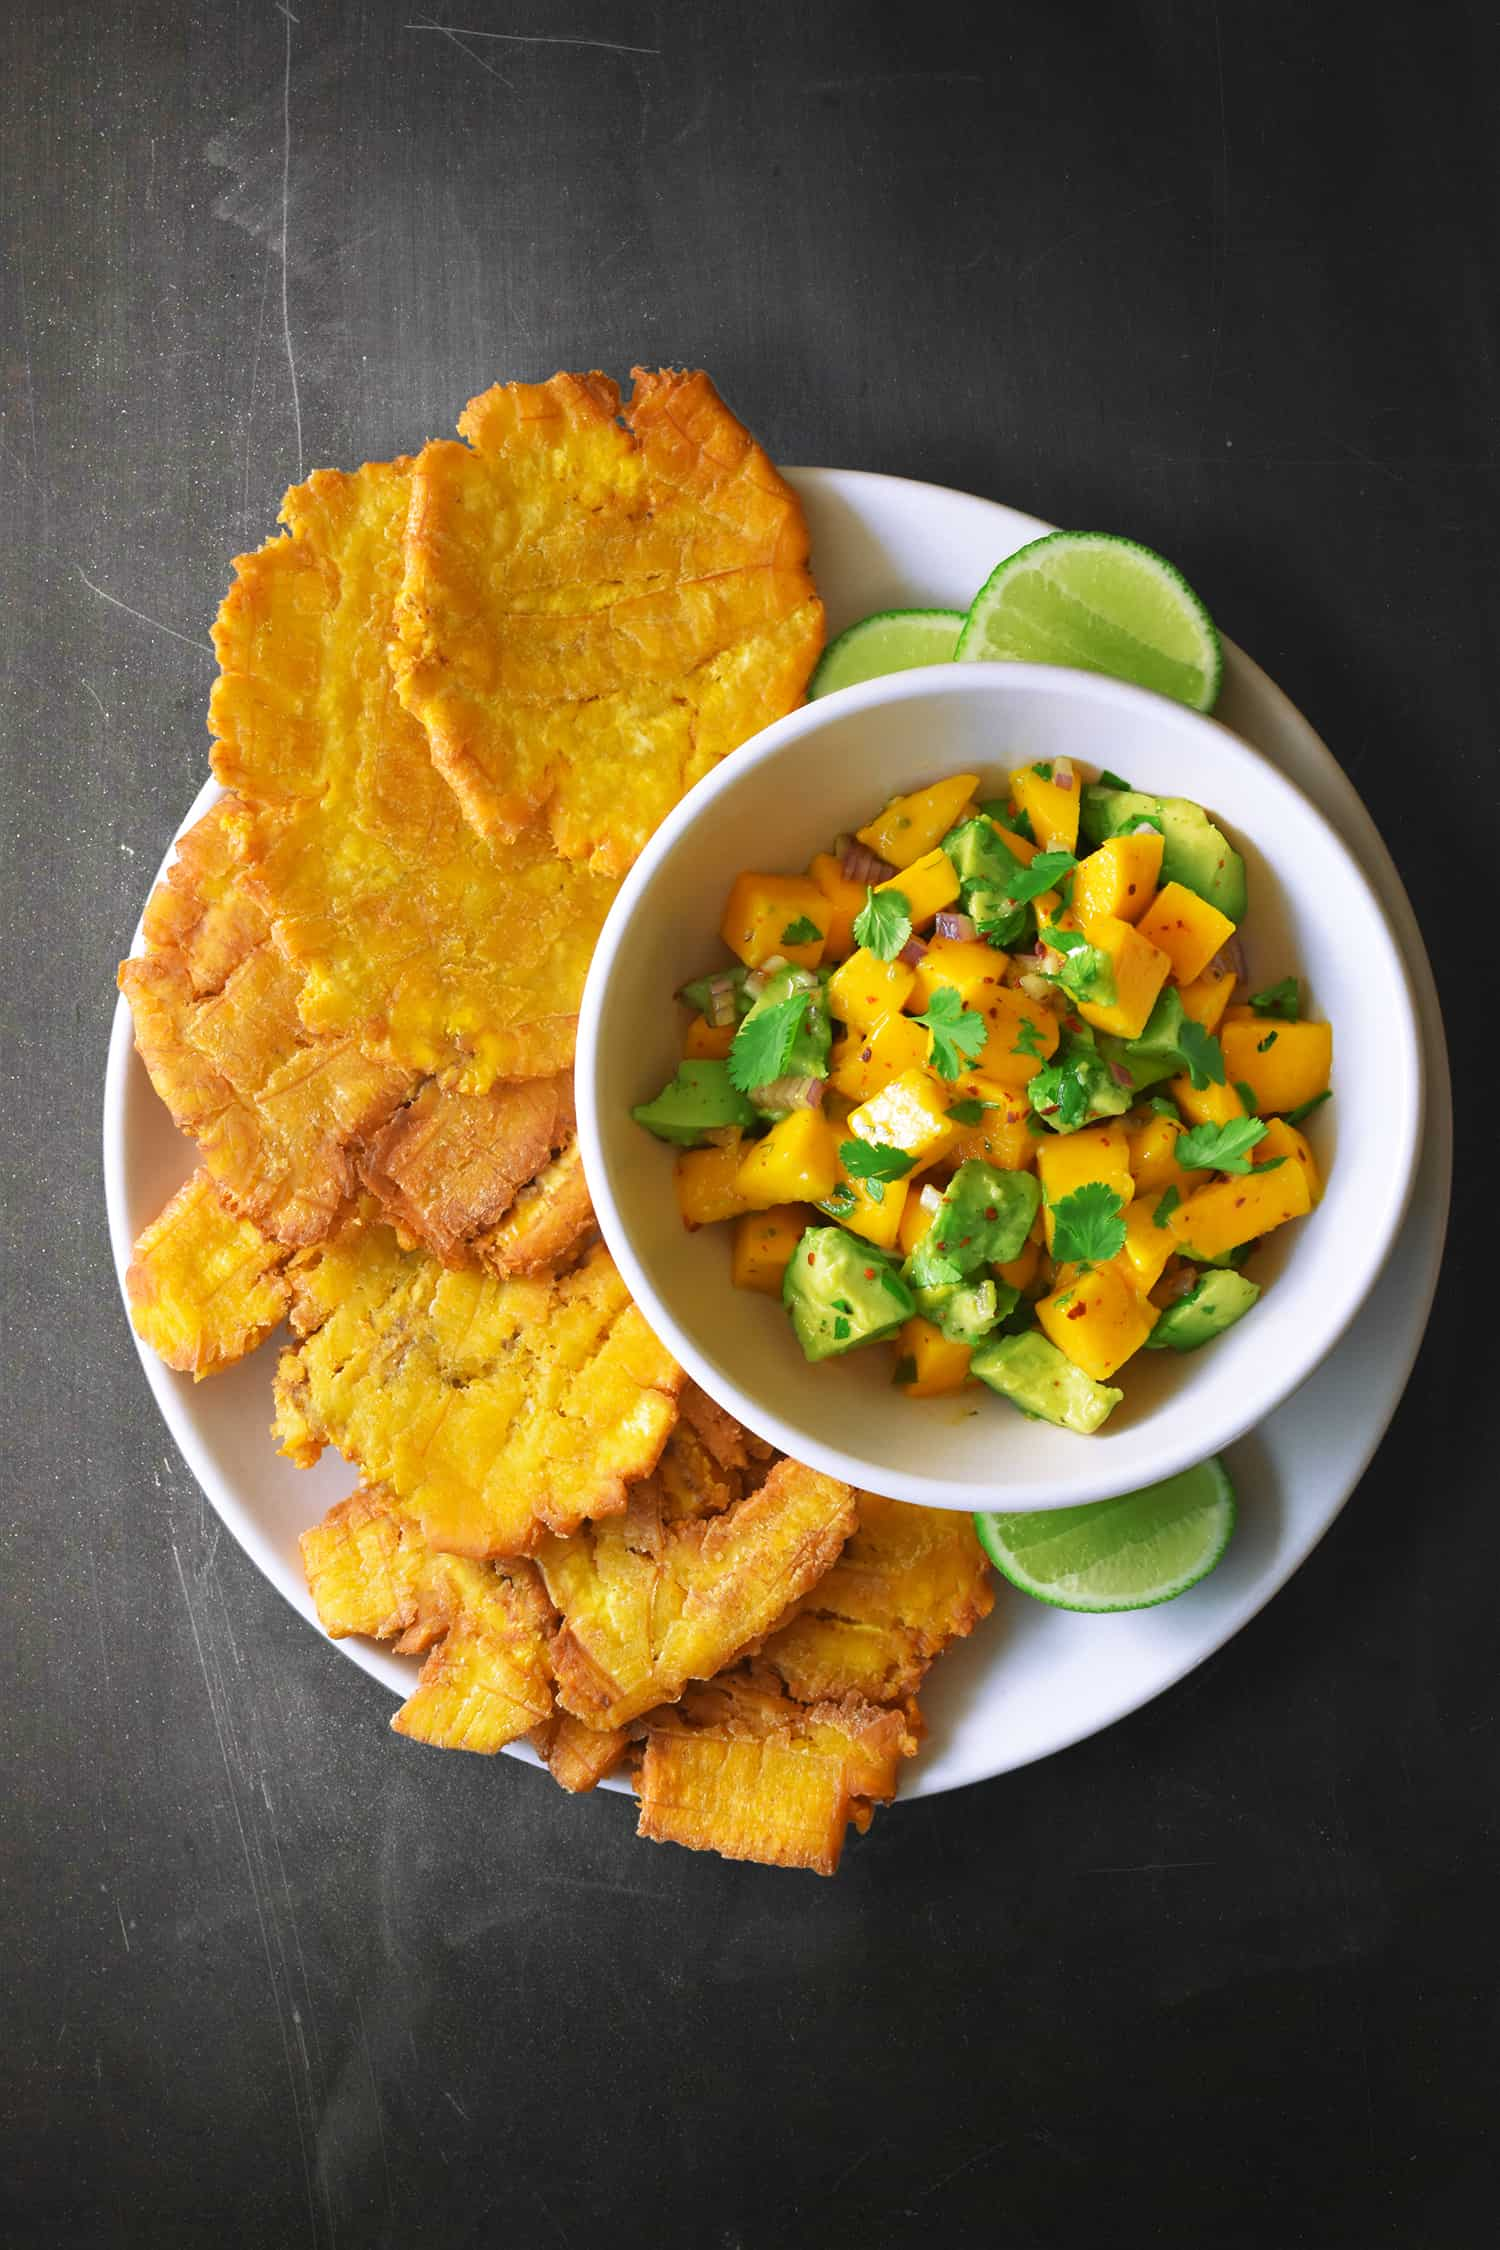 Fried plantains green or yellow dresses